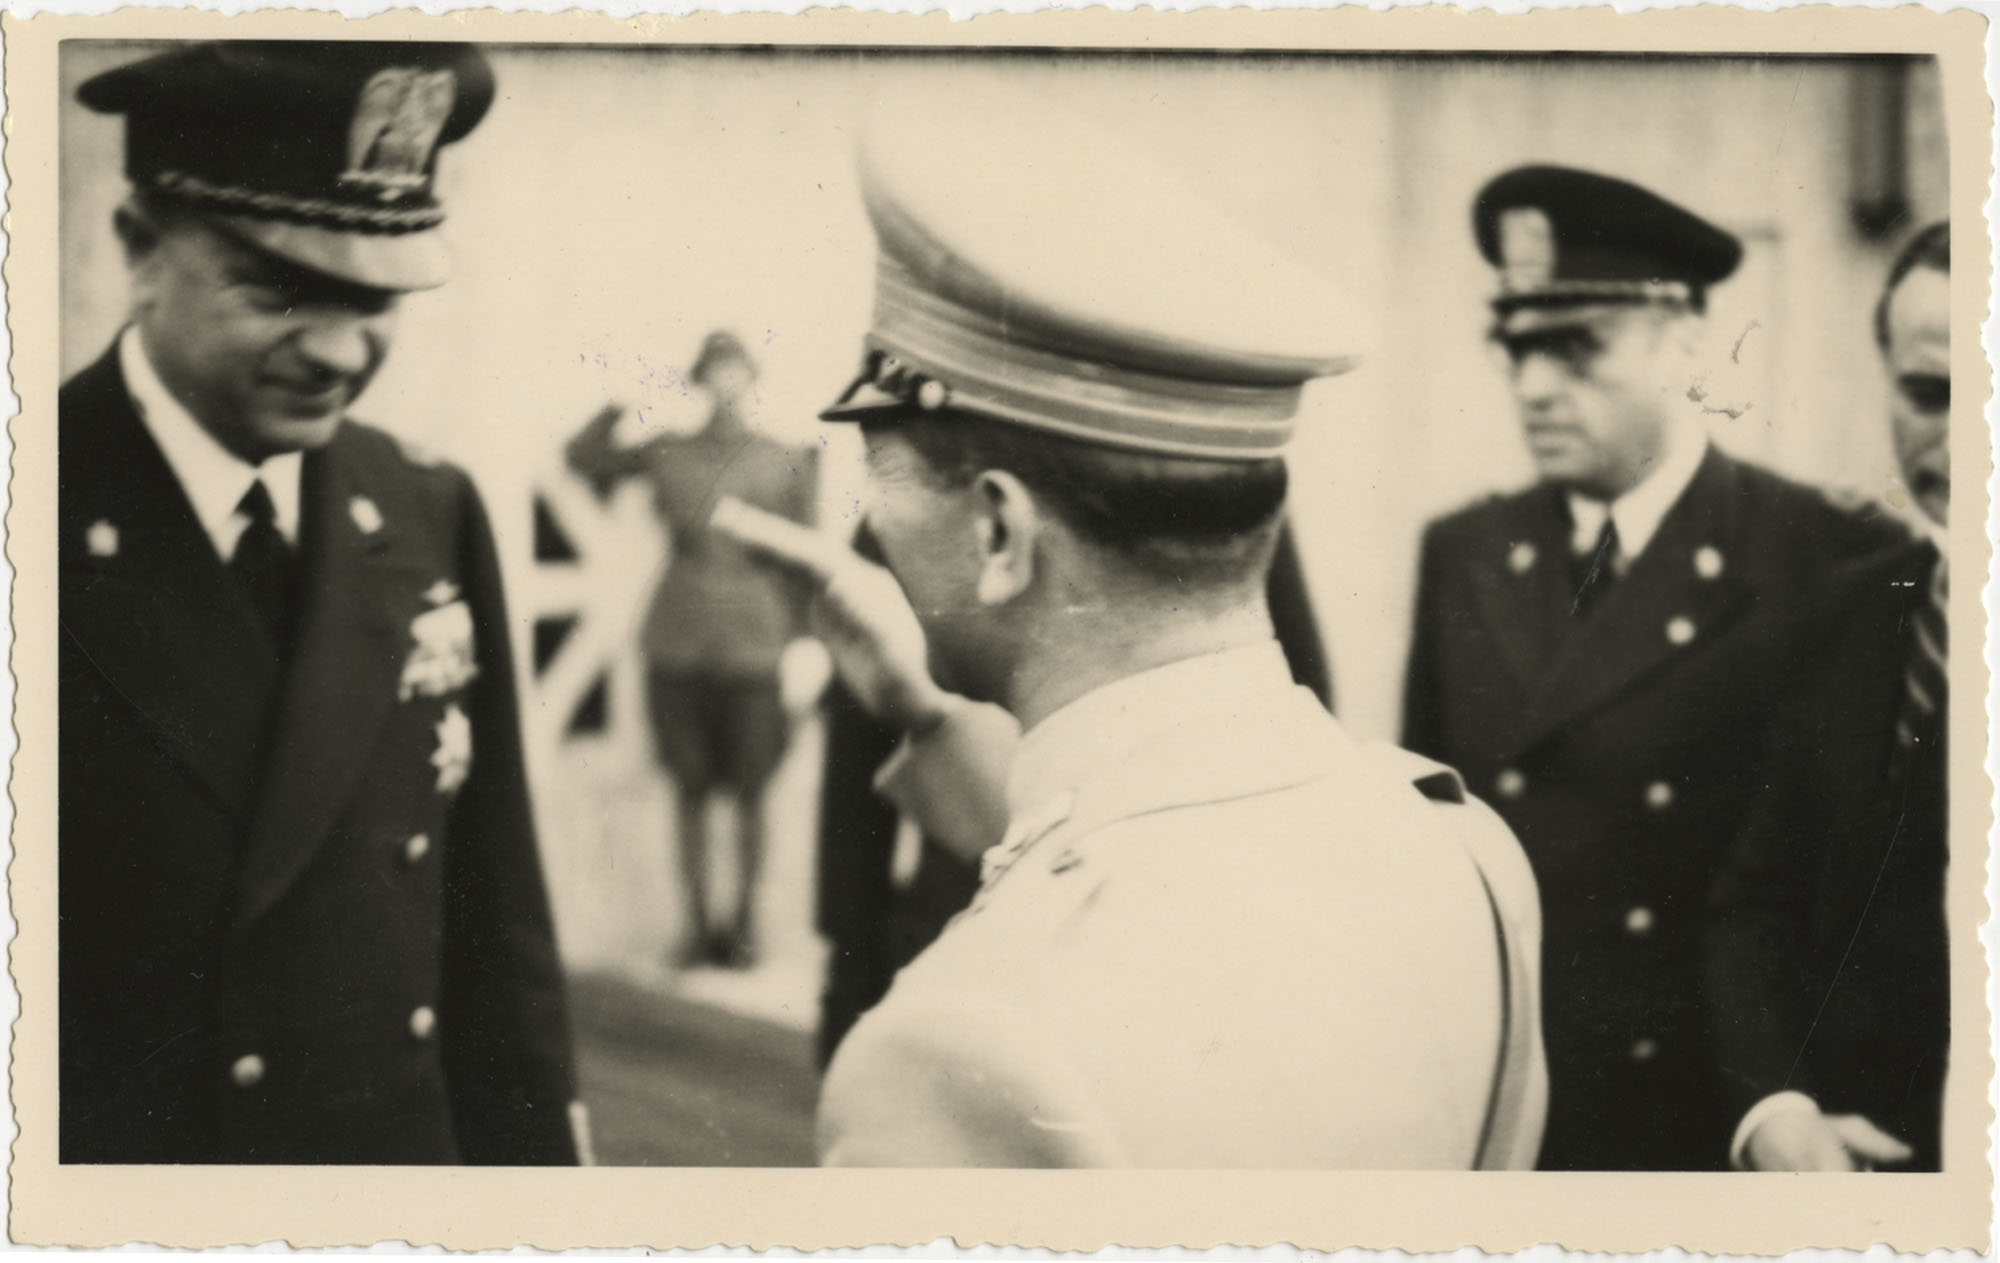 Mario Pansa greeting military personnel, Photograph 1